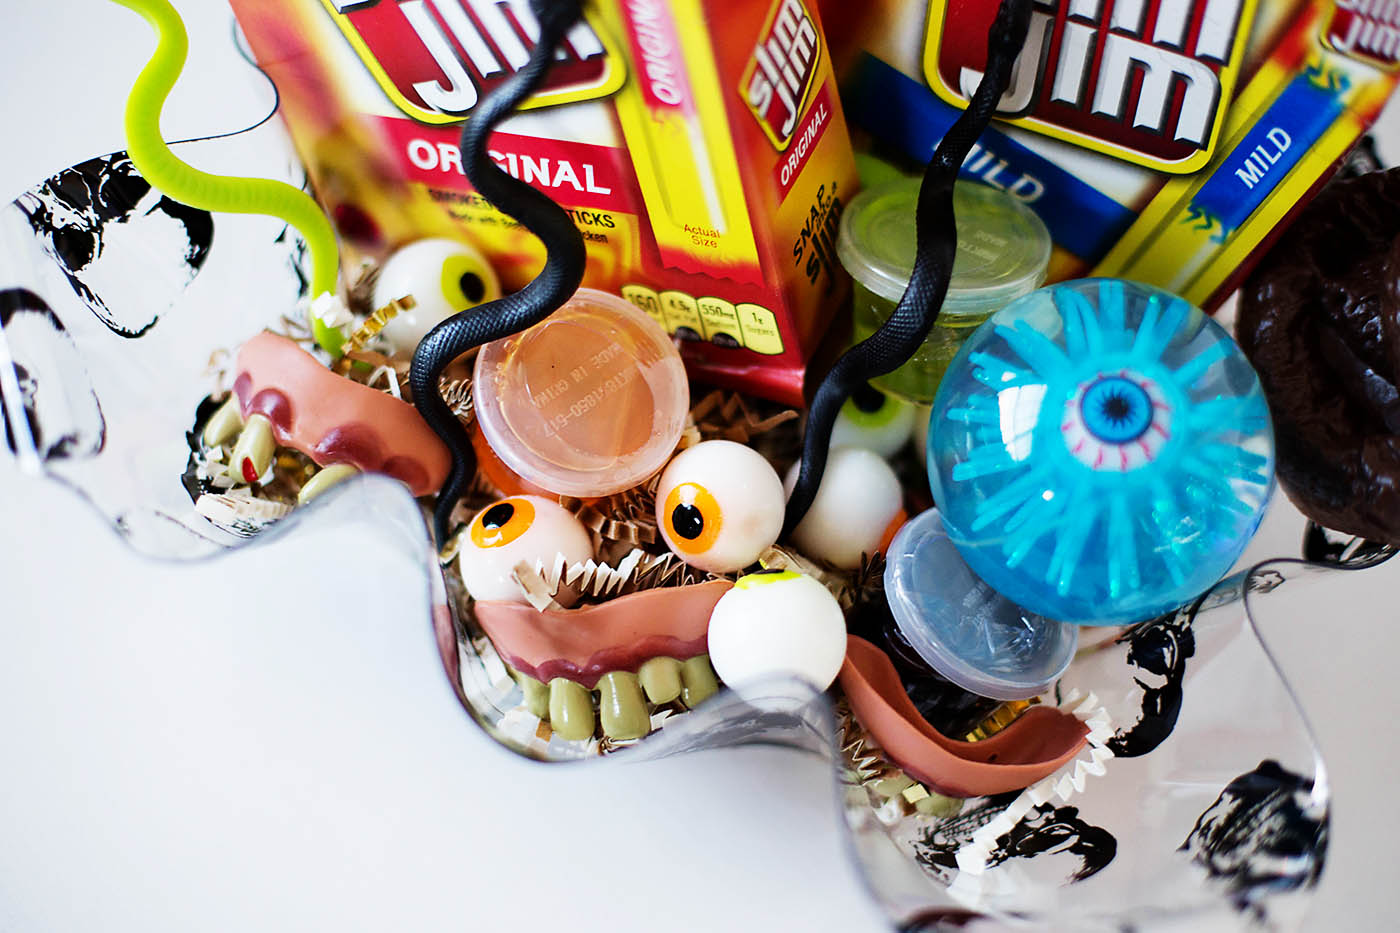 Slim Jim Car Opener >> Halloween Surprise Bucket & Slim Jim Sweepstakes! — All ...